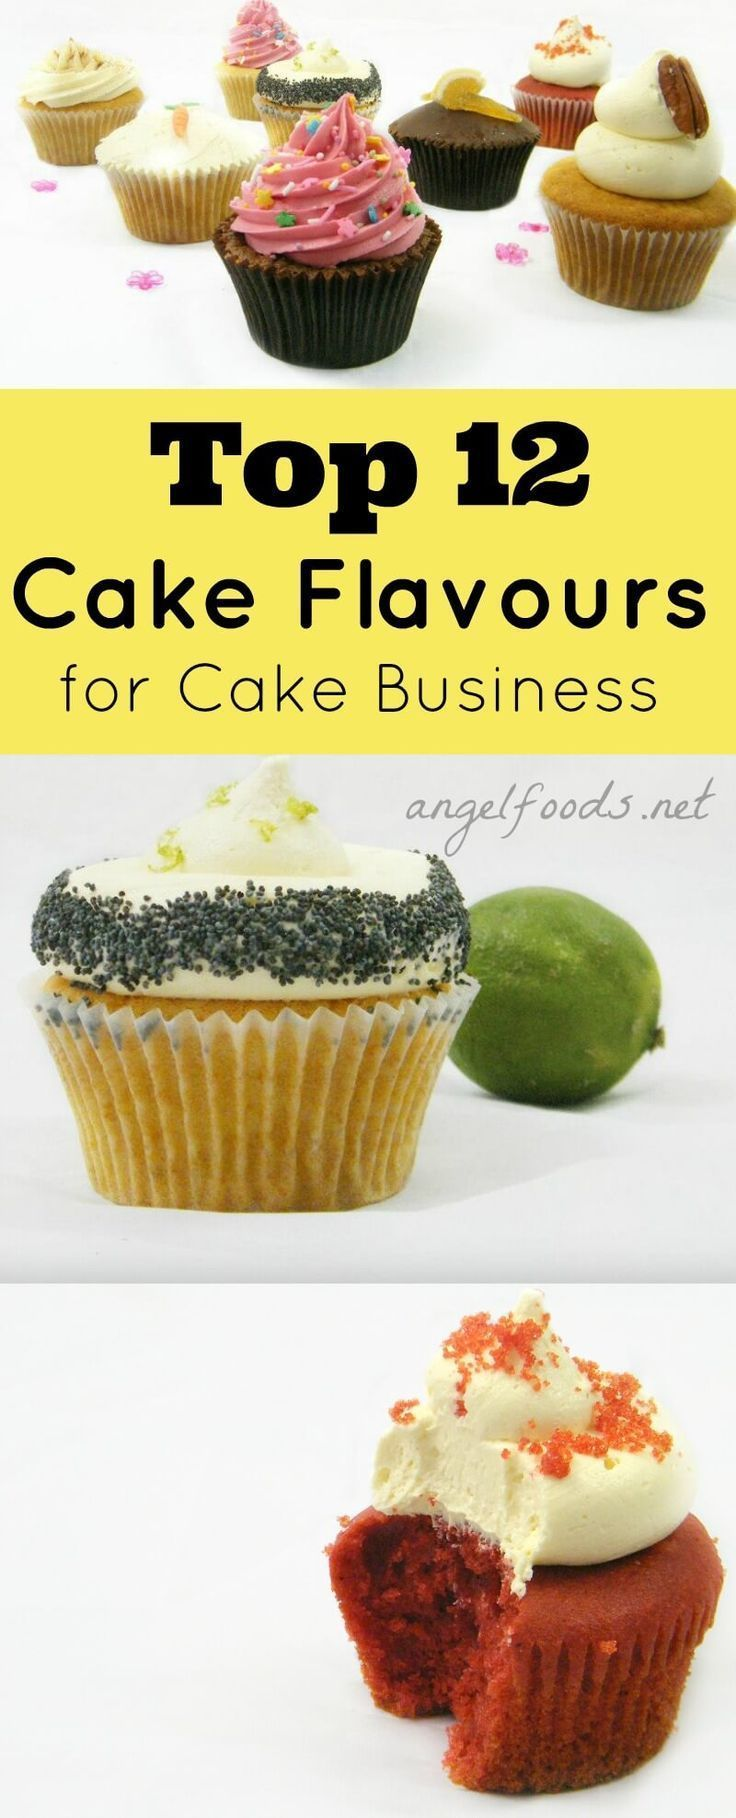 12 Most Popular Cake Flavours What Are The Best Selling Cake